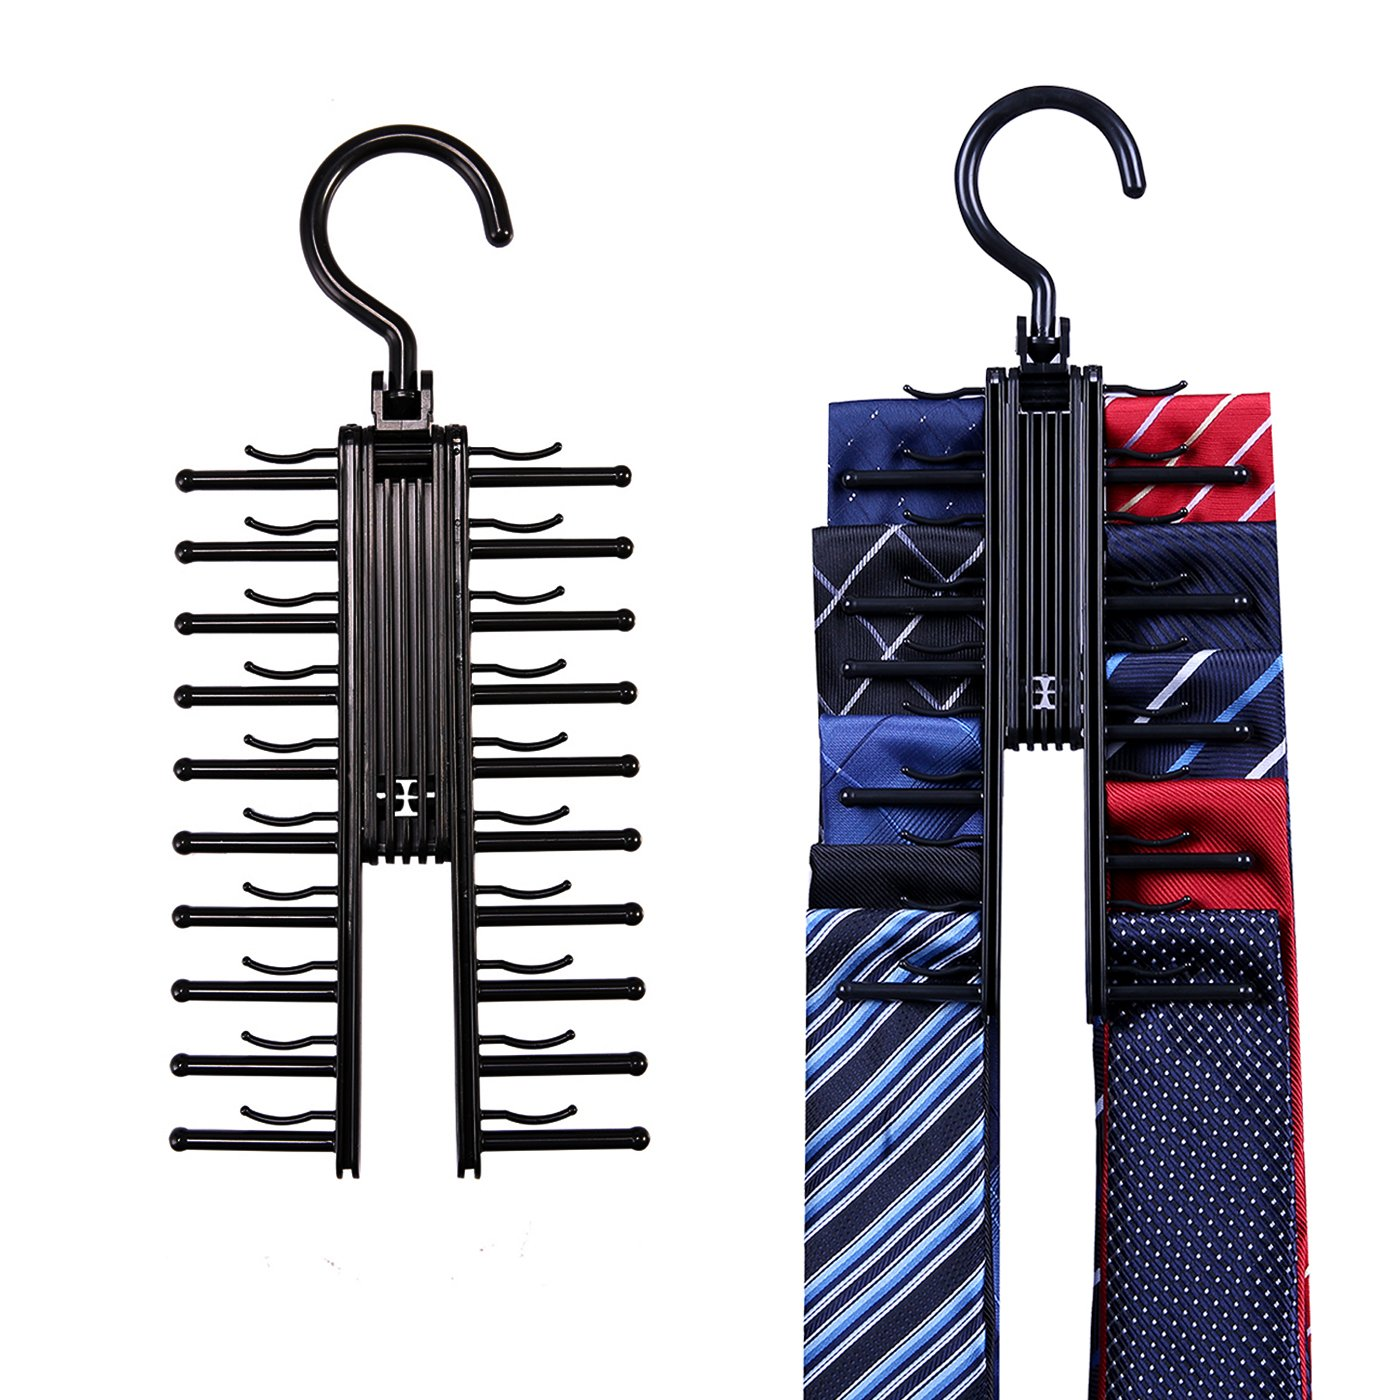 HDE Closet Tie Rack Hanger 2 Pack Organizer Compact Non-Slip Rotating Cross Design Rack Securely Holds up to 20 Neck Ties Belts or Scarves